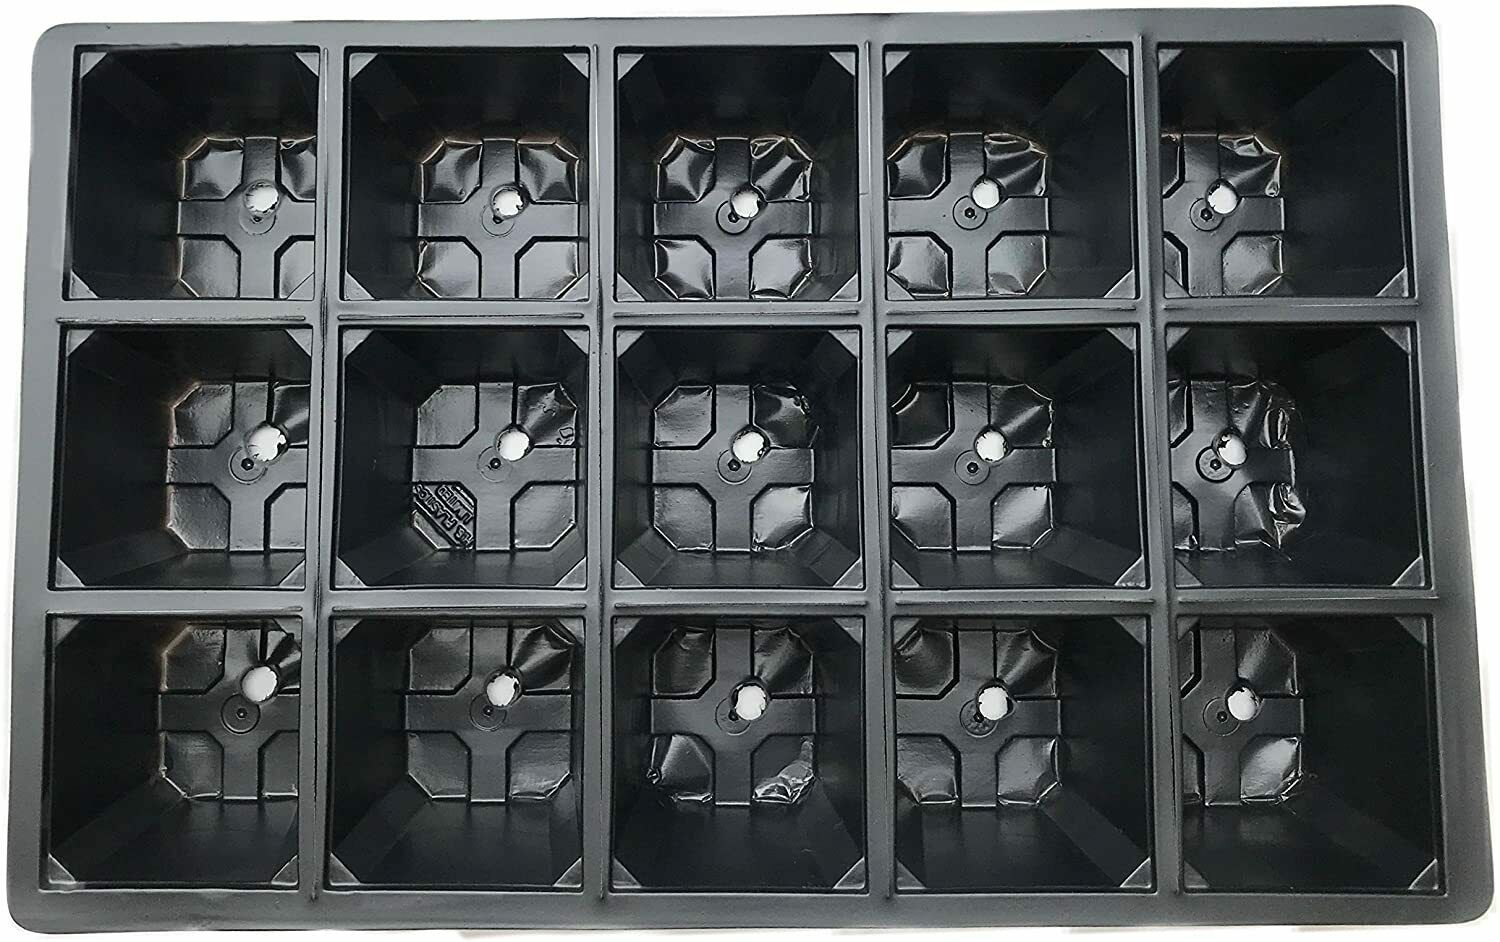 15 Cell Packof 40 Professional Grade Seed Trays Bedding Plant Seed Propagat Tray